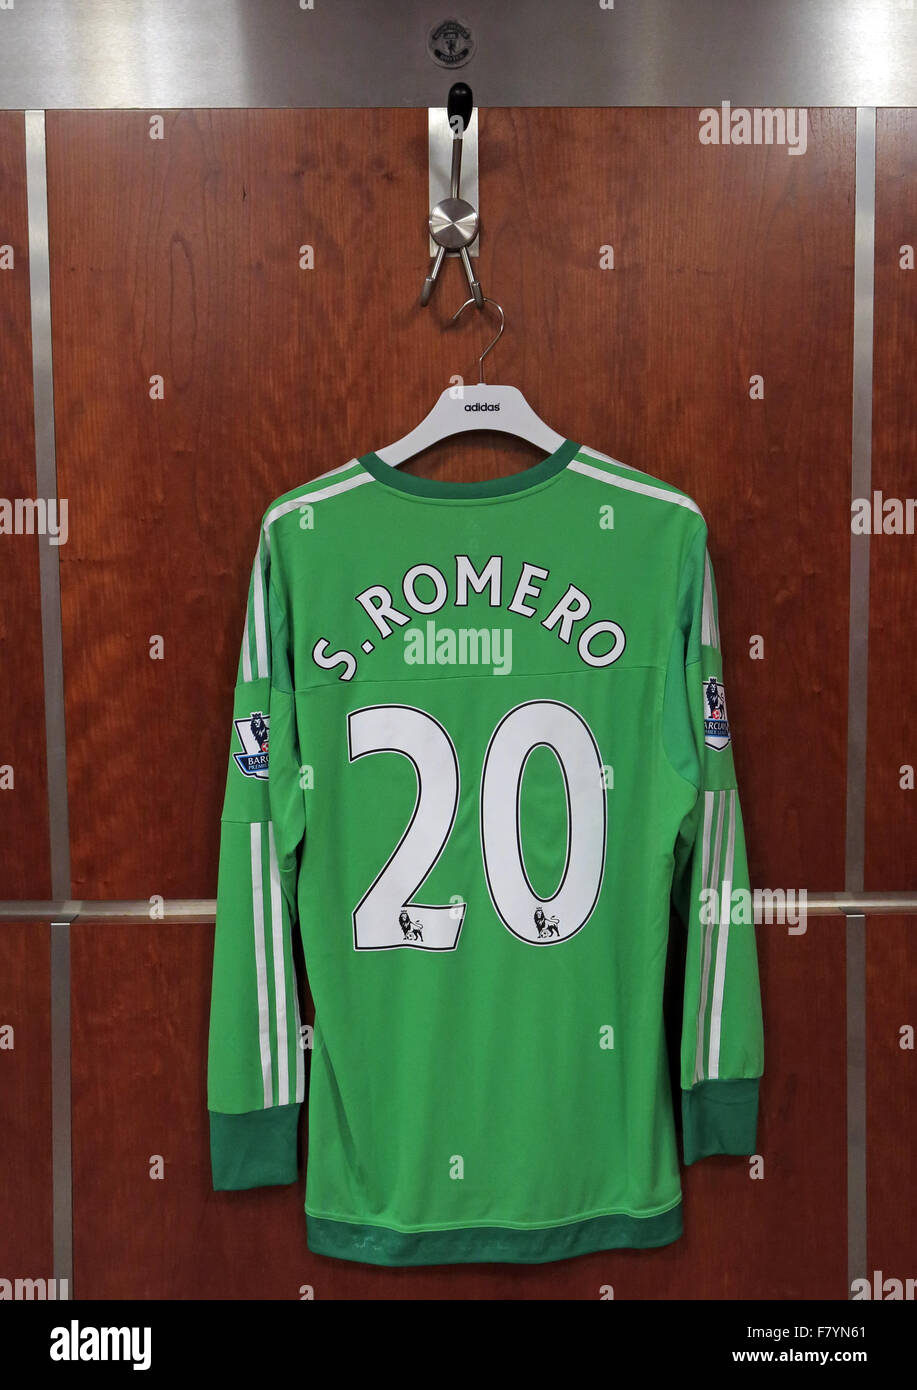 Sergio Romero green shirt in MUFC dressing room, Old Trafford - Stock Image